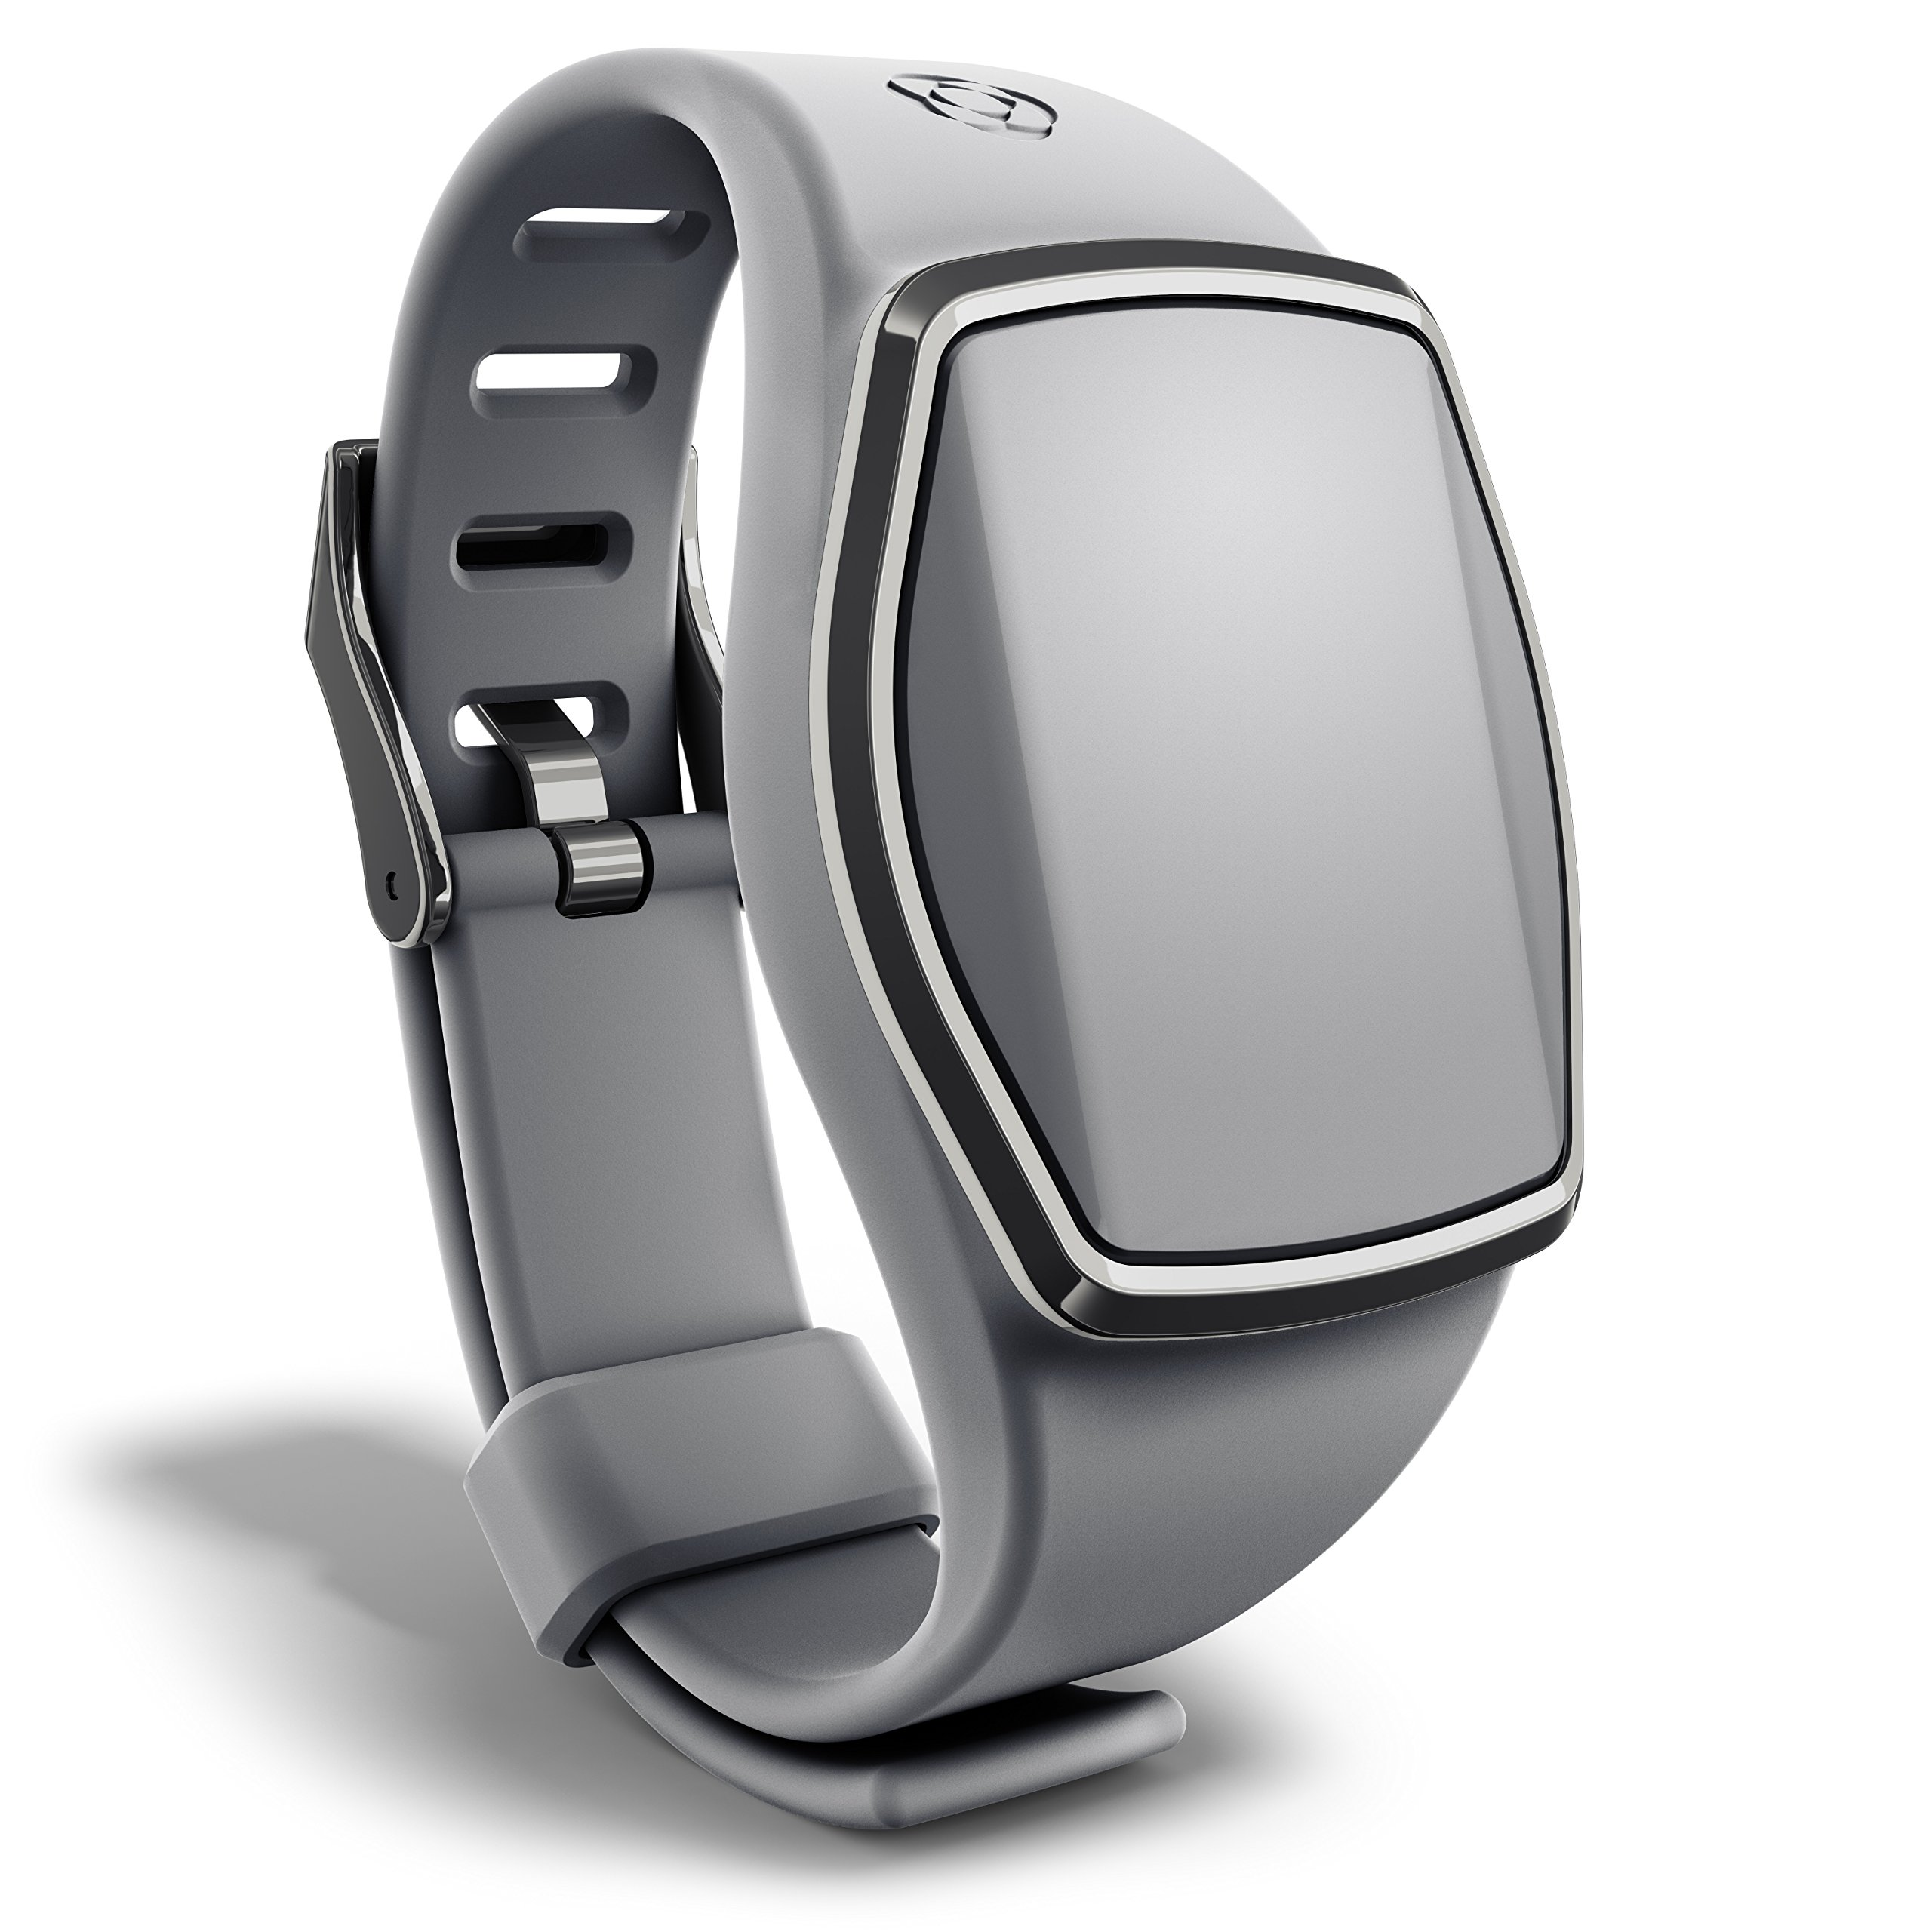 GreatCall Lively Wearable Fitness Tracker with Exclusive Urgent Response